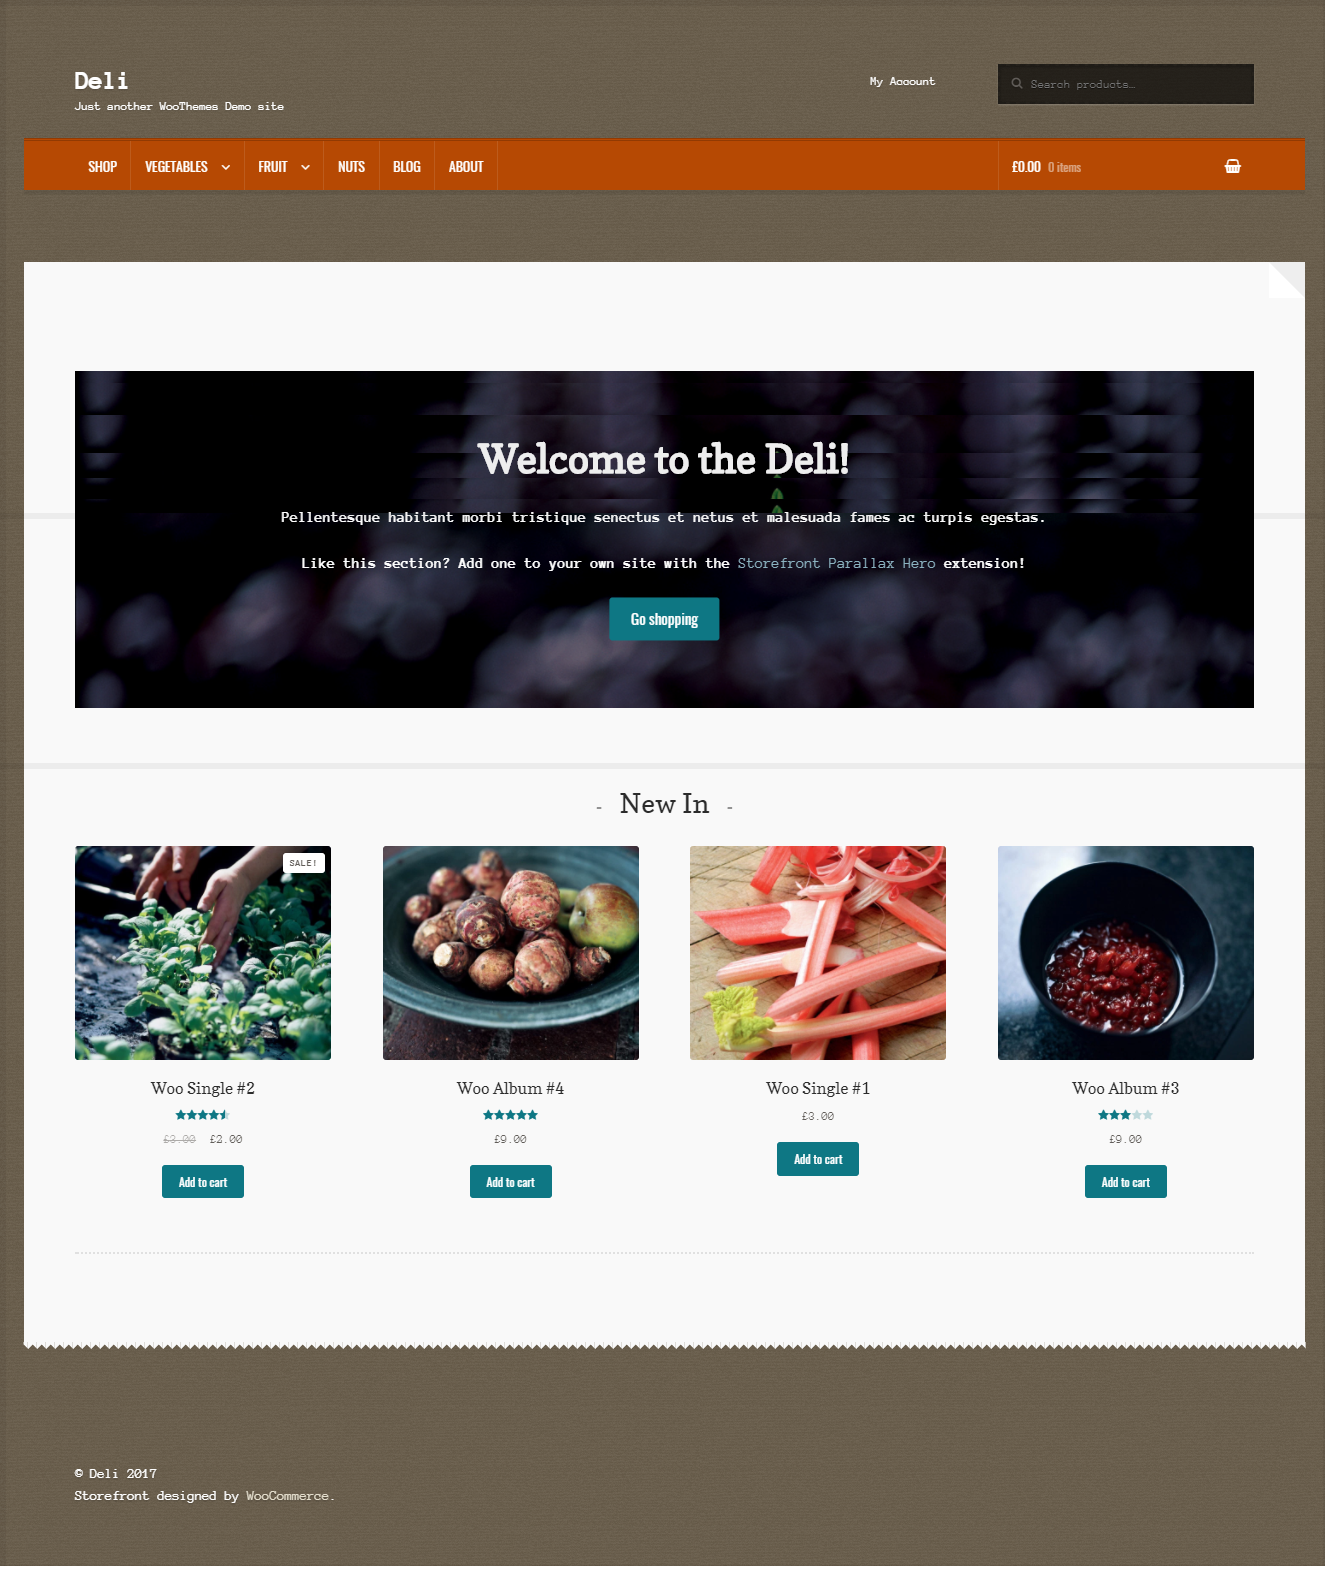 The homepage design is unique and is a great option if you are selling natural products on your store.